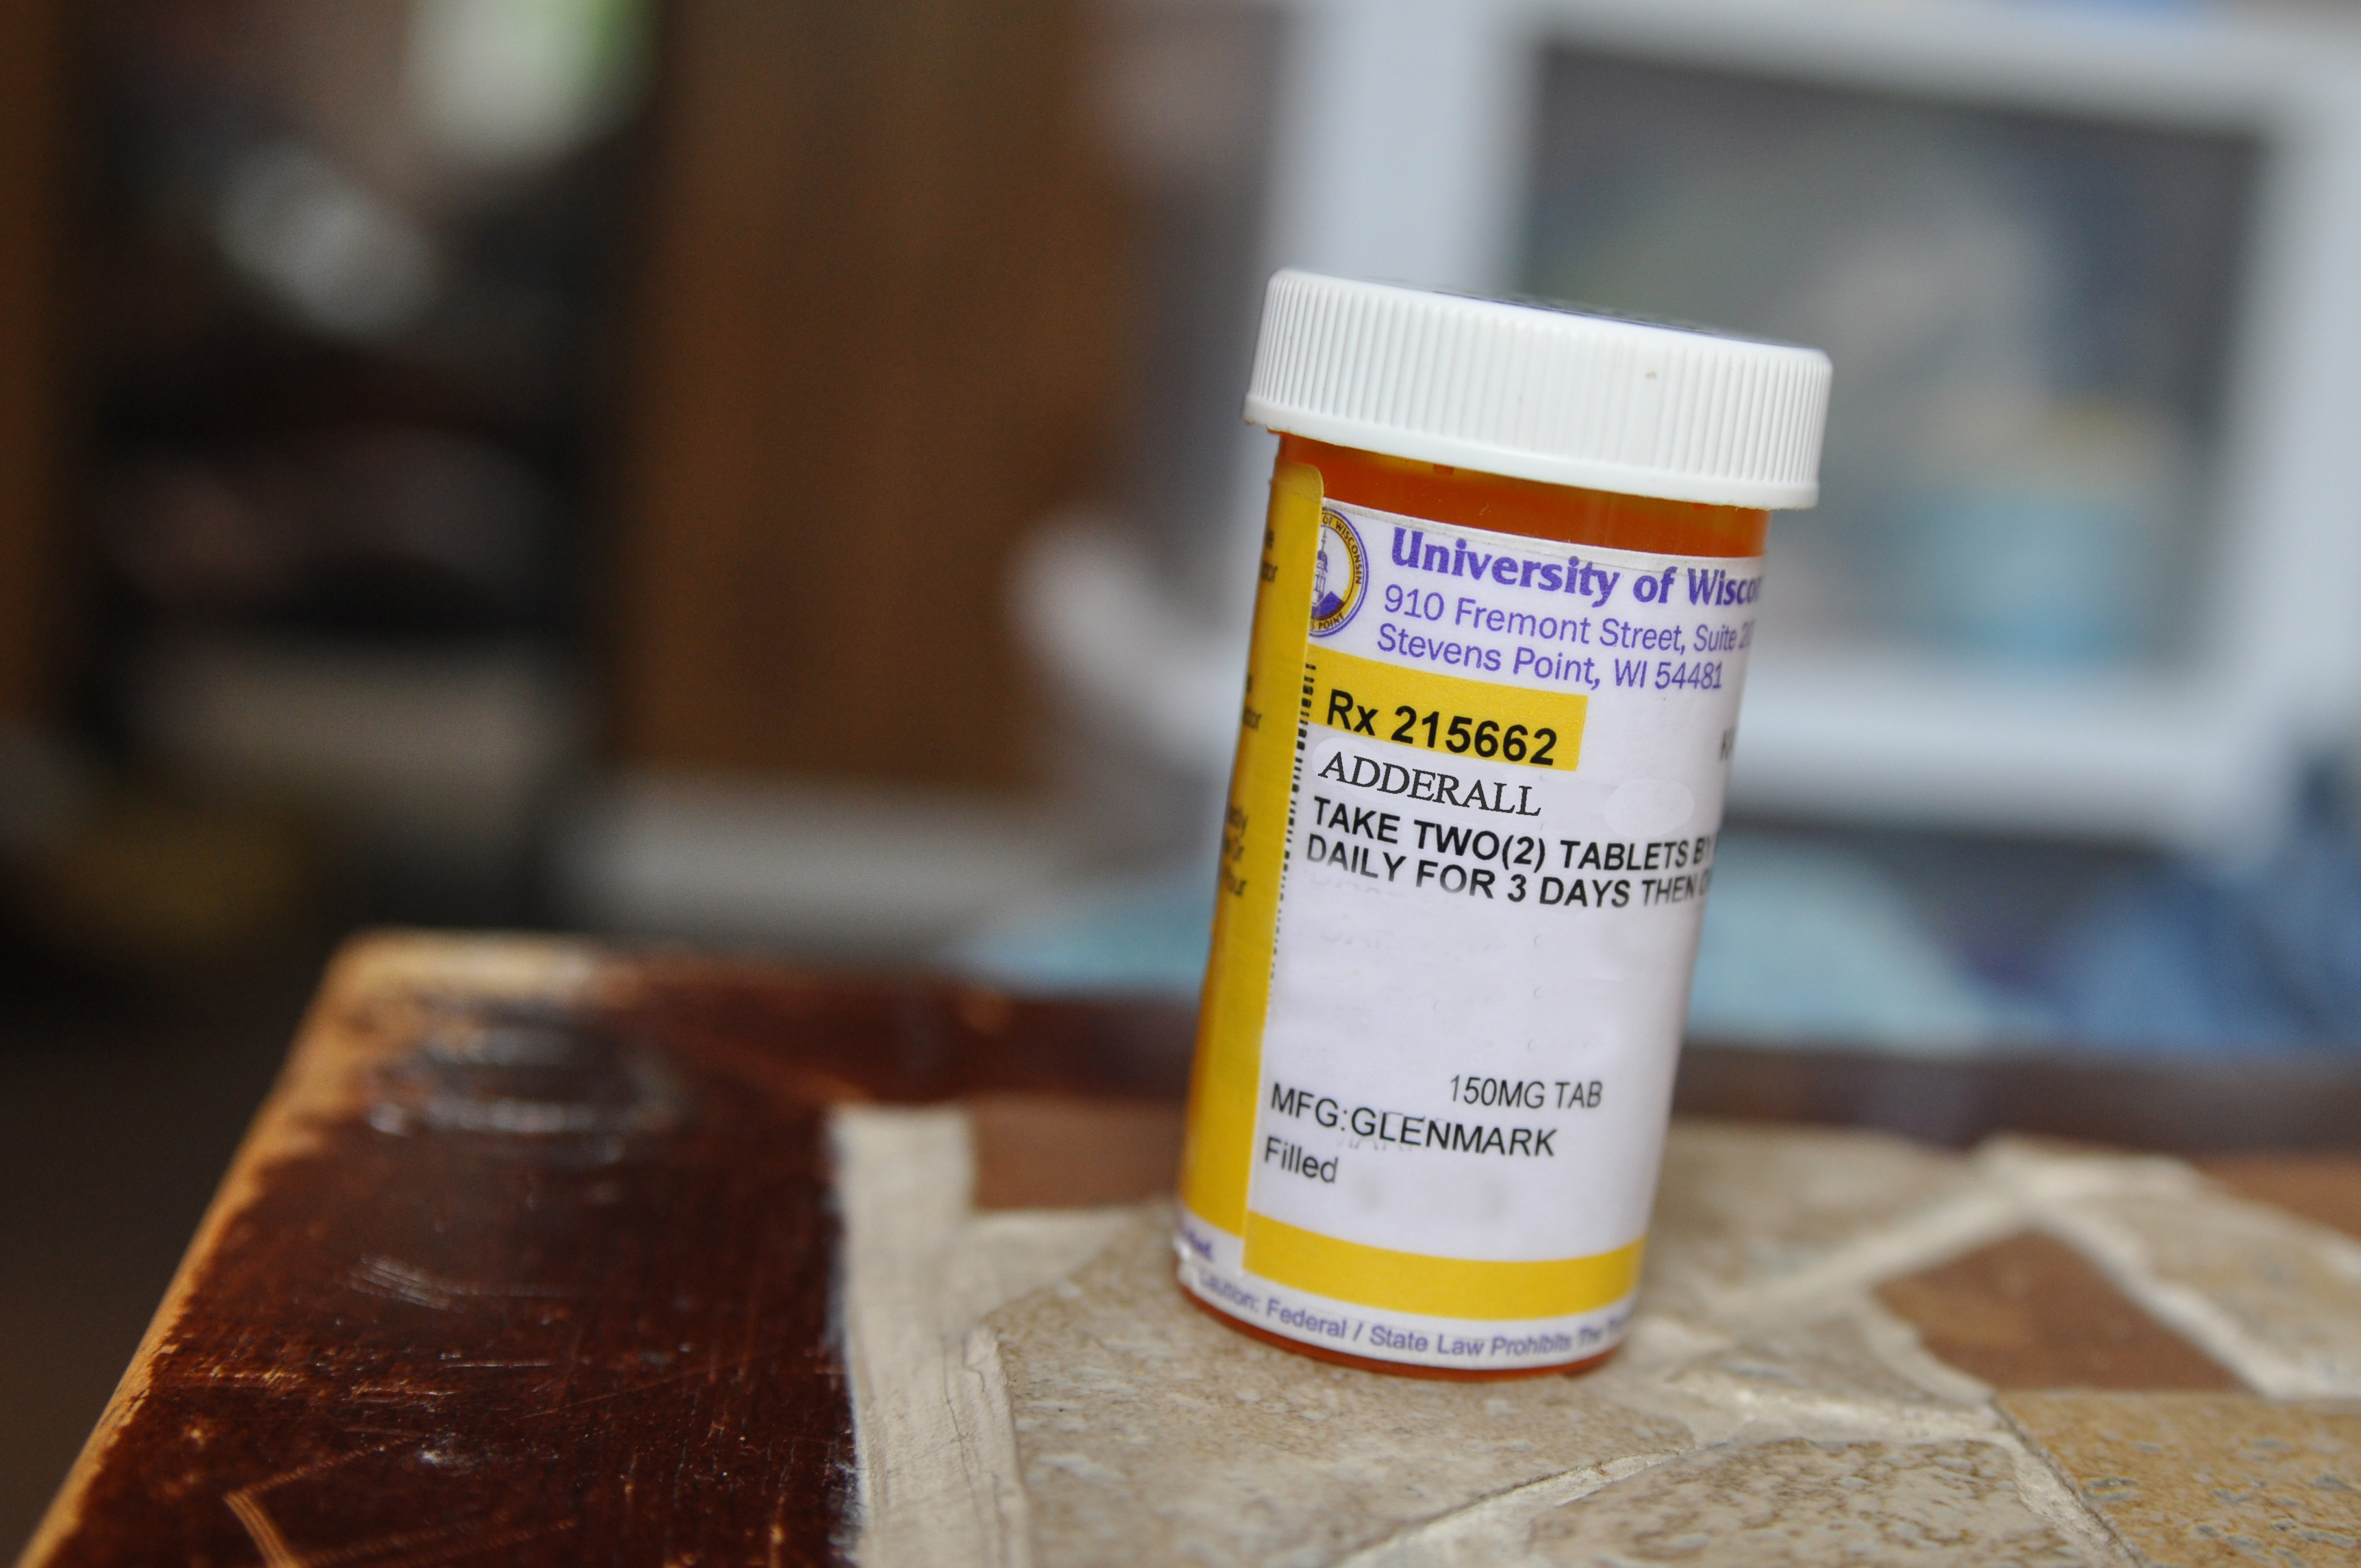 Adderall Abuse on Campus? Students and Staff Share Their